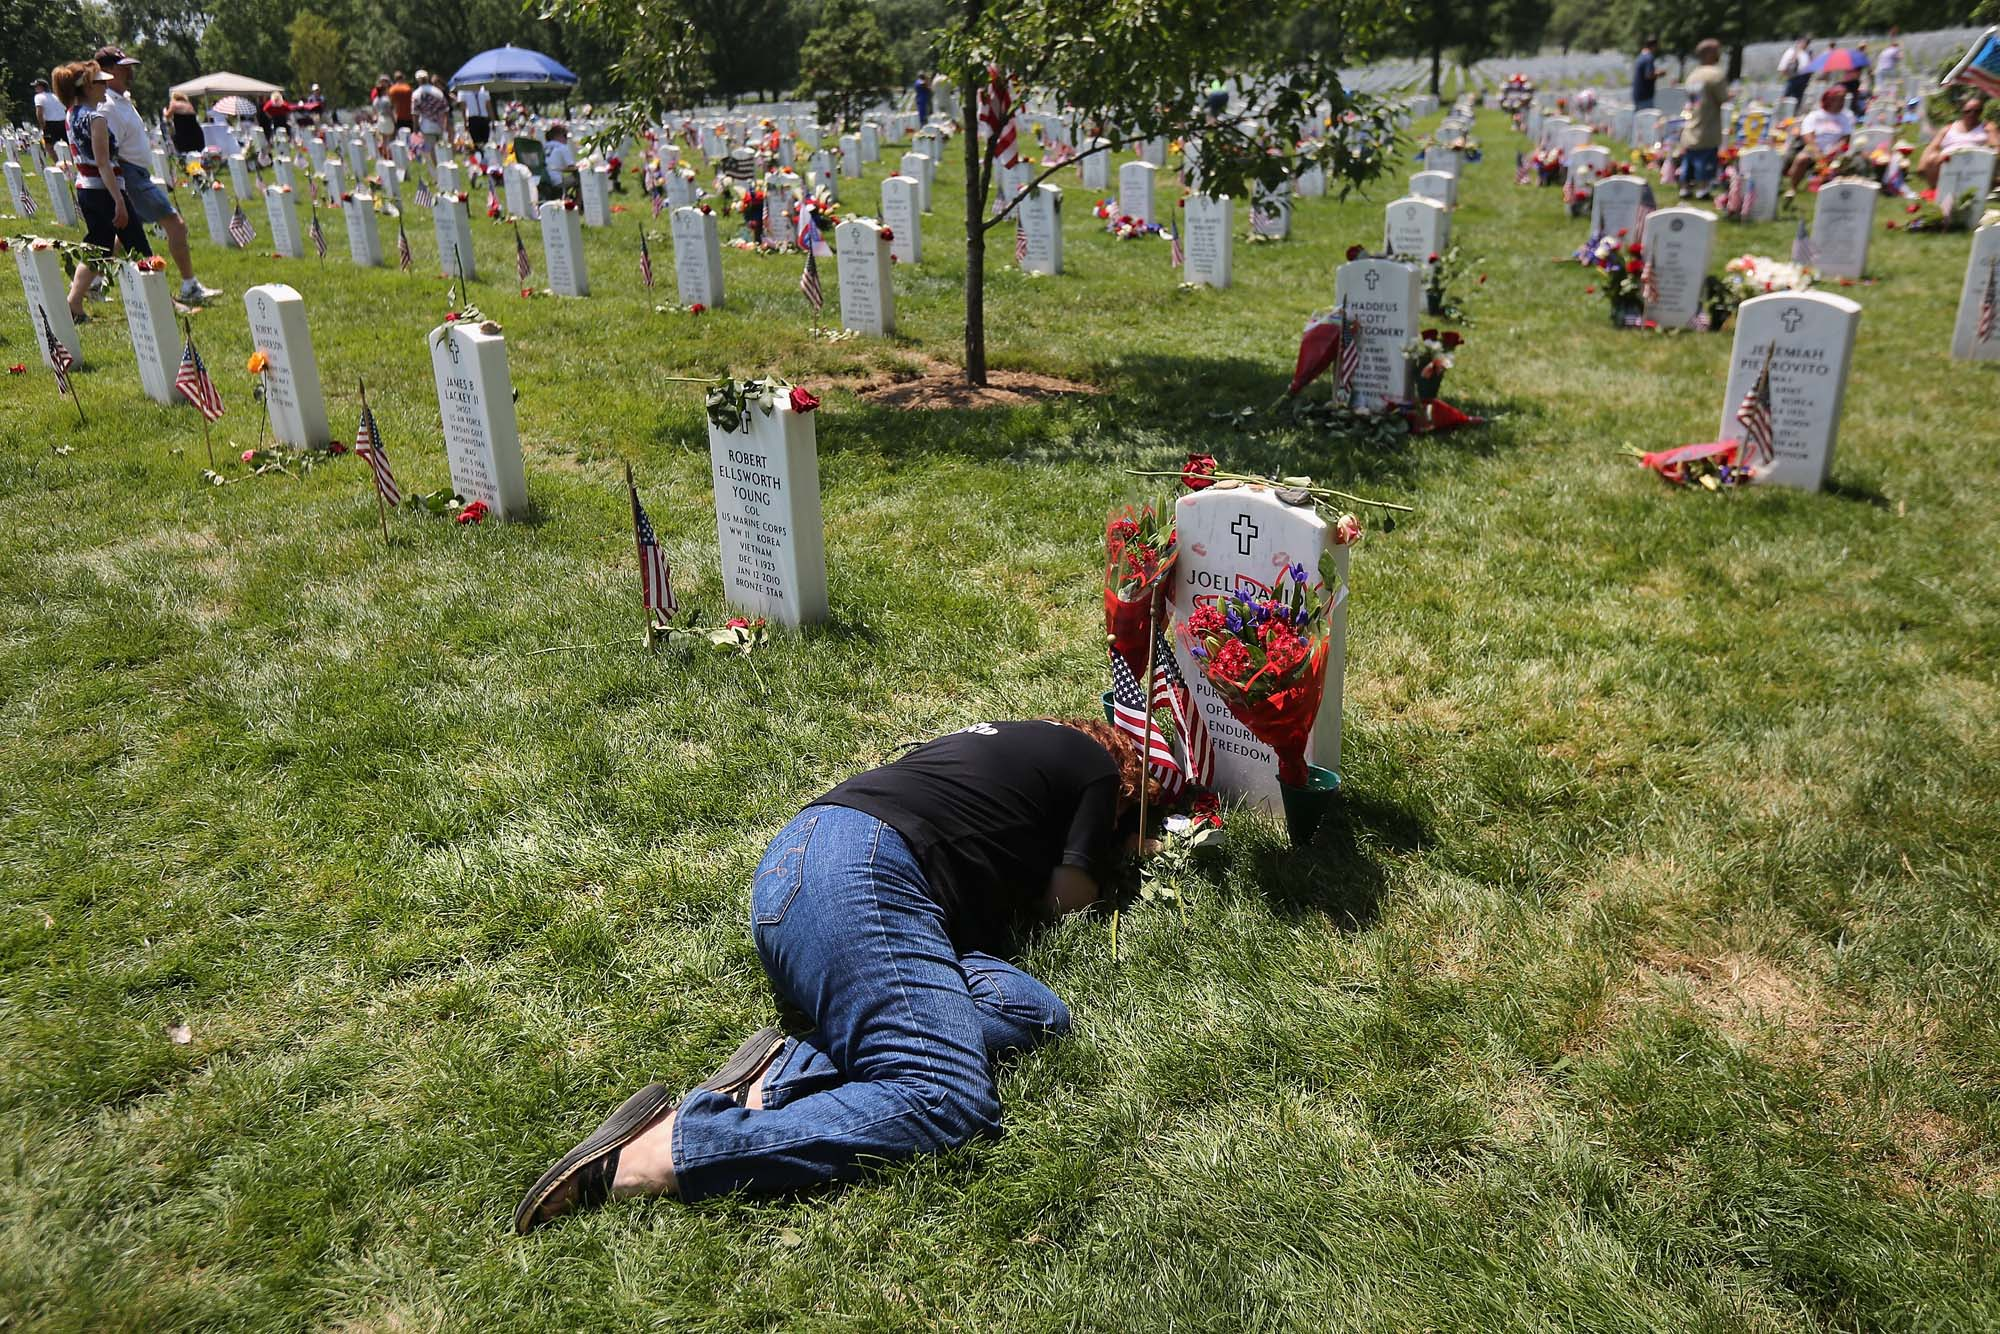 Remembering the Fallen: Scenes from the Memorial Day weekend